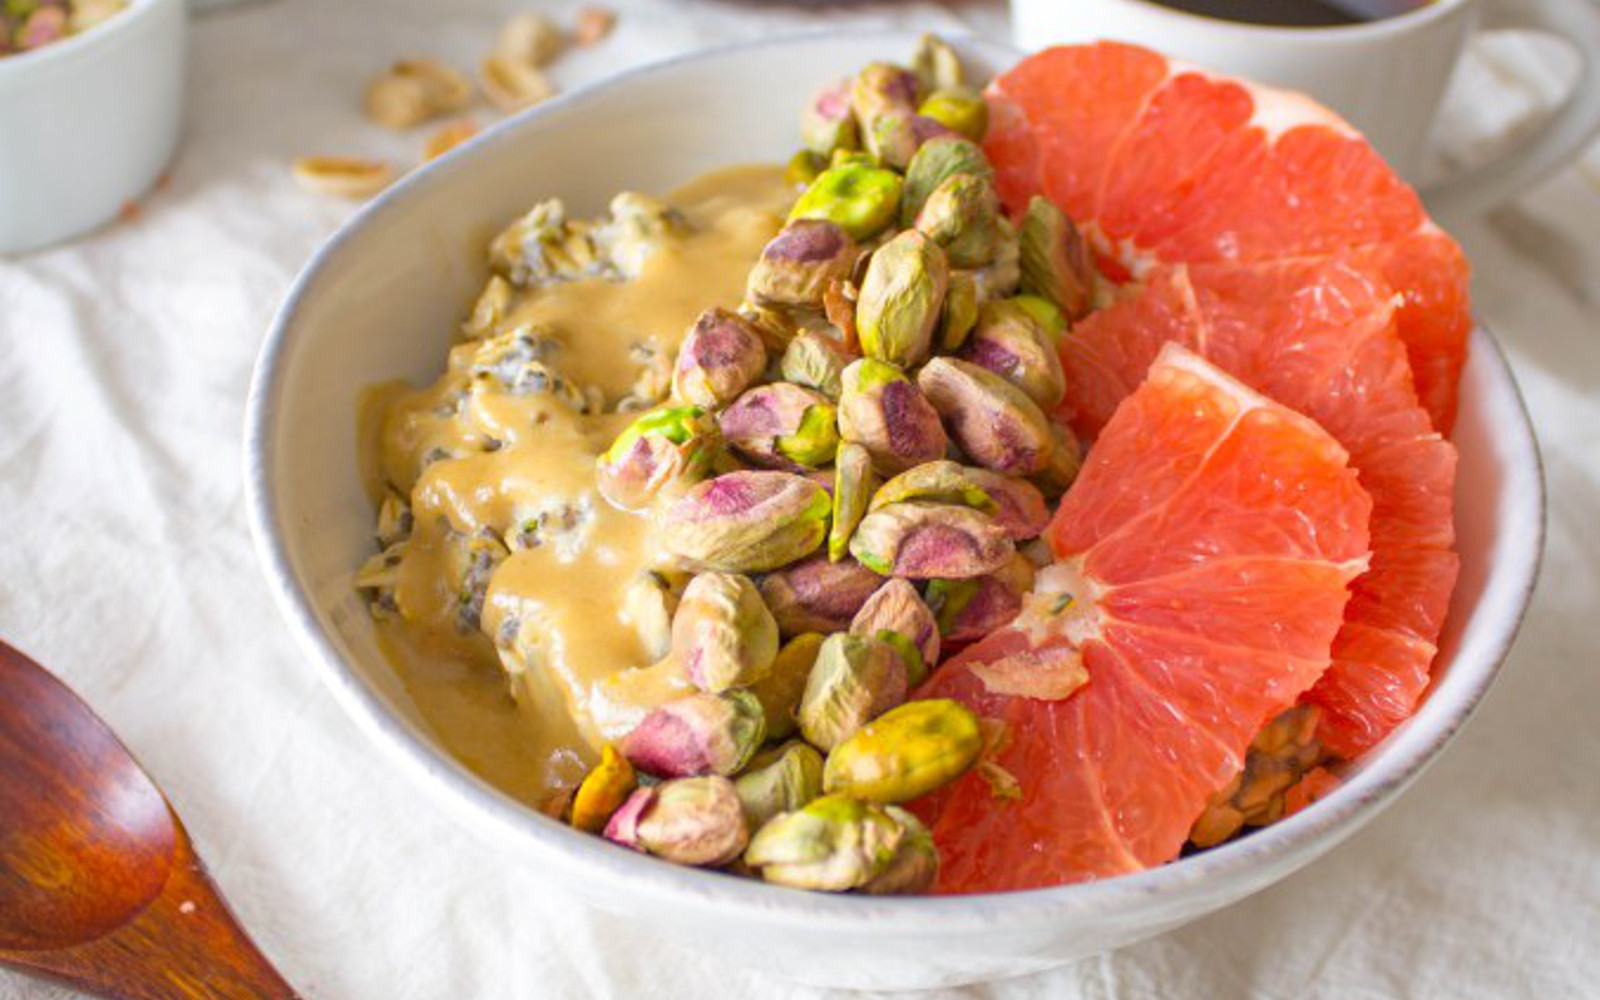 Breakfast Bowl with Oats, Pistachios, and Grapefruit